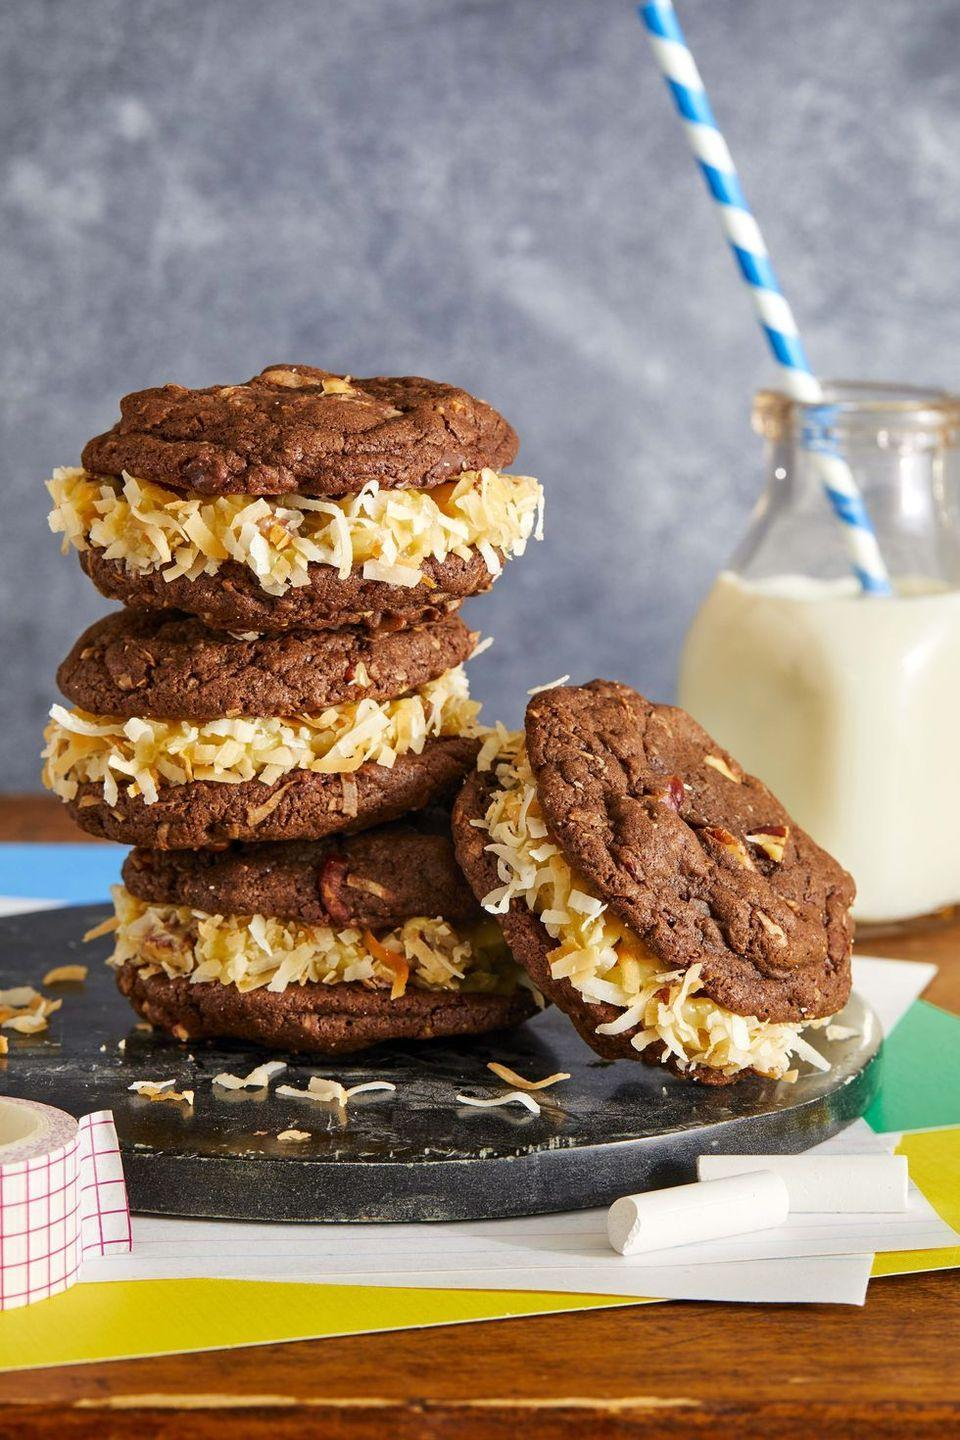 "<p>These chocolatey treats with a custardy, coconut filling are not your average cookie.</p><p><em><a href=""https://www.countryliving.com/food-drinks/a33553999/german-chocolate-sandwich-cookies/"" rel=""nofollow noopener"" target=""_blank"" data-ylk=""slk:Get the recipe from Country Living »"" class=""link rapid-noclick-resp"">Get the recipe from Country Living »</a></em></p>"